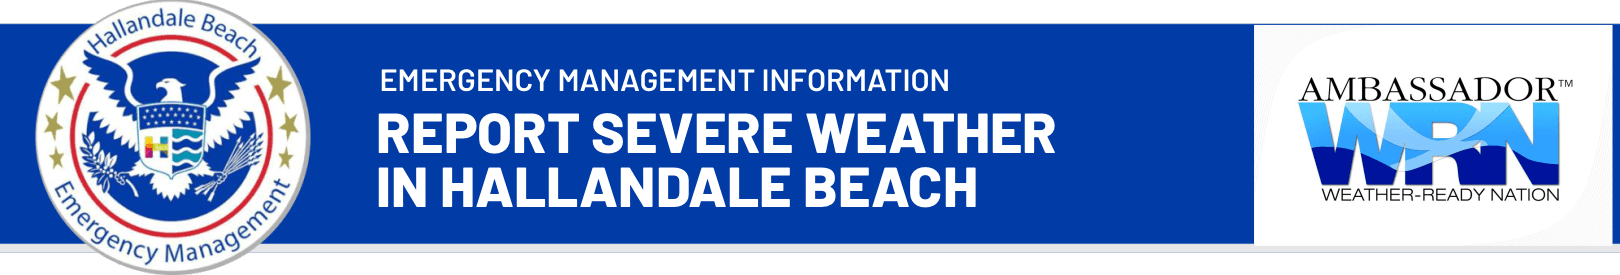 Report Severe Weather in Hallandale Beach